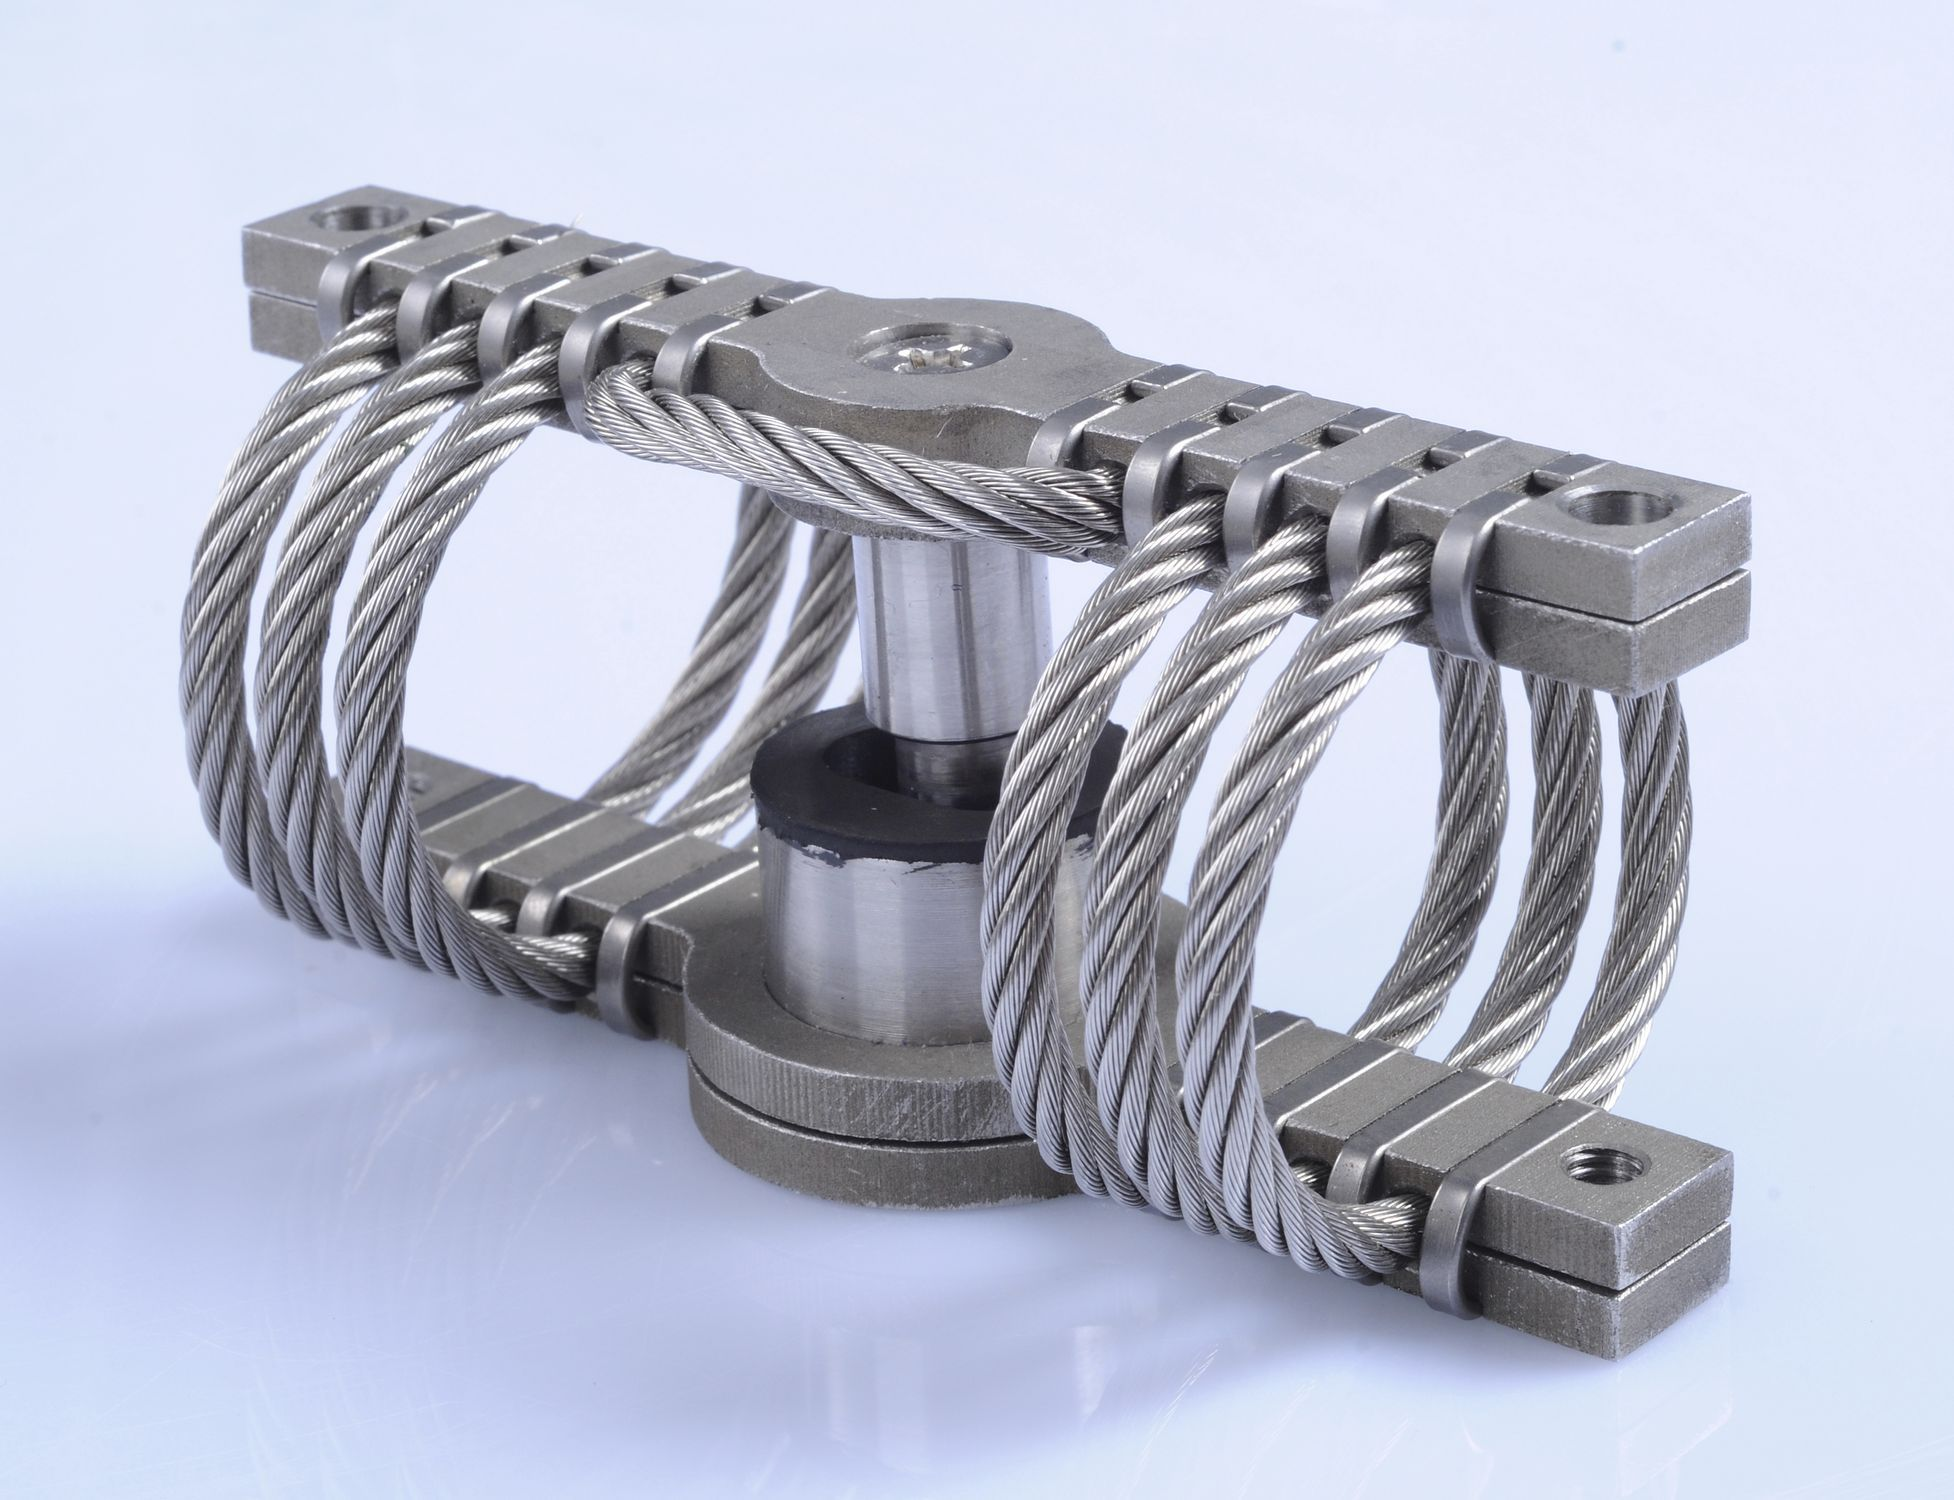 Wire rope isolator anti-vibration mount GGTX05-023 Wuxi Hongyuan ...